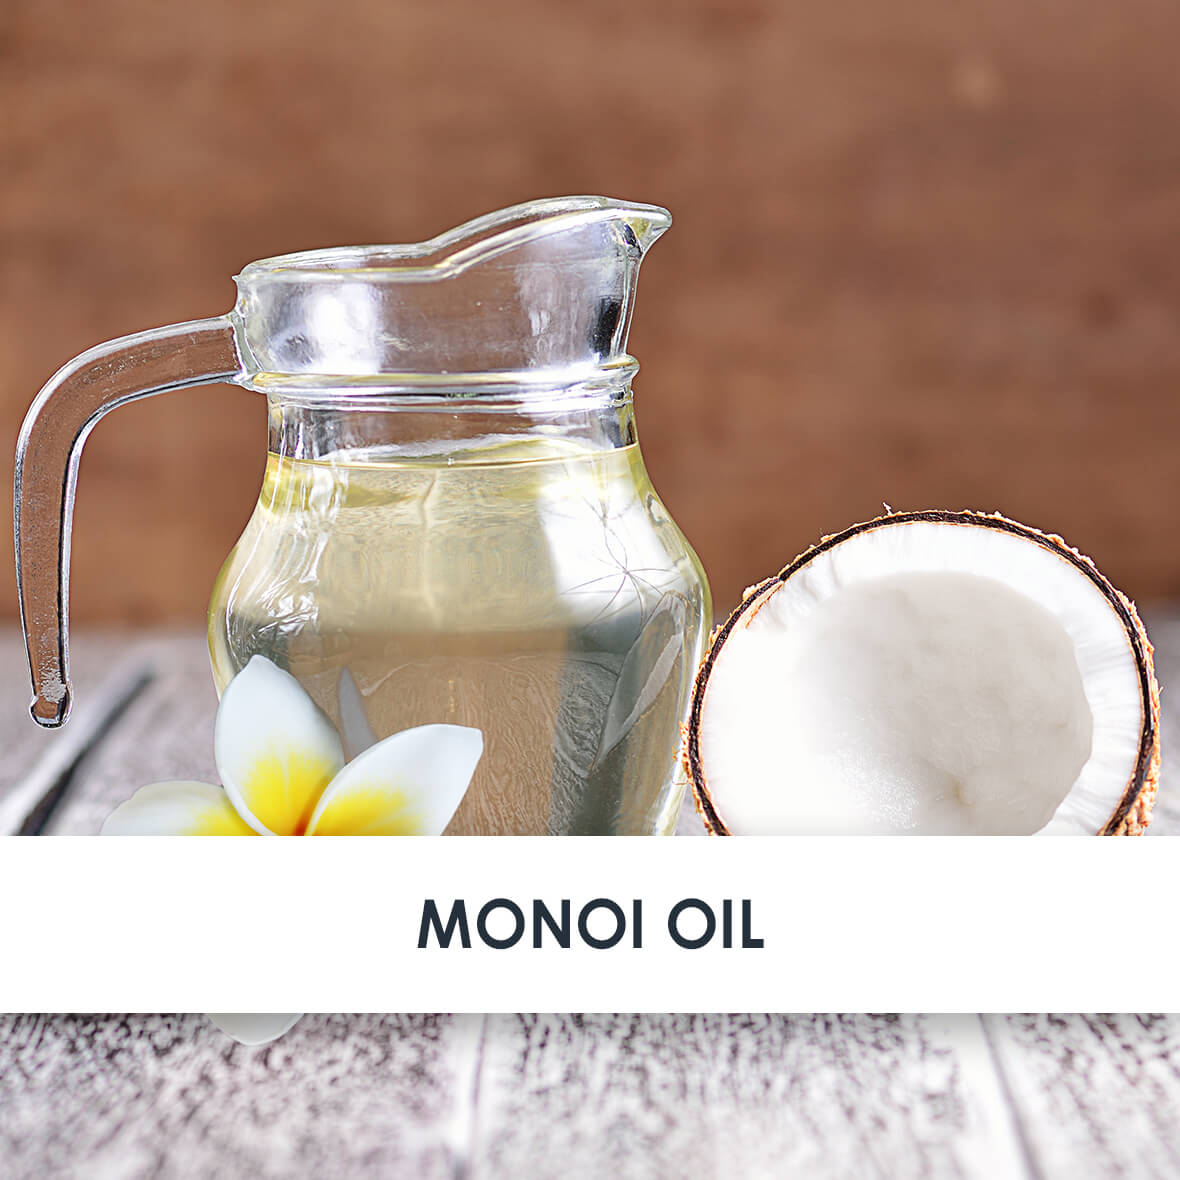 Monoi Oil Skincare Benefits